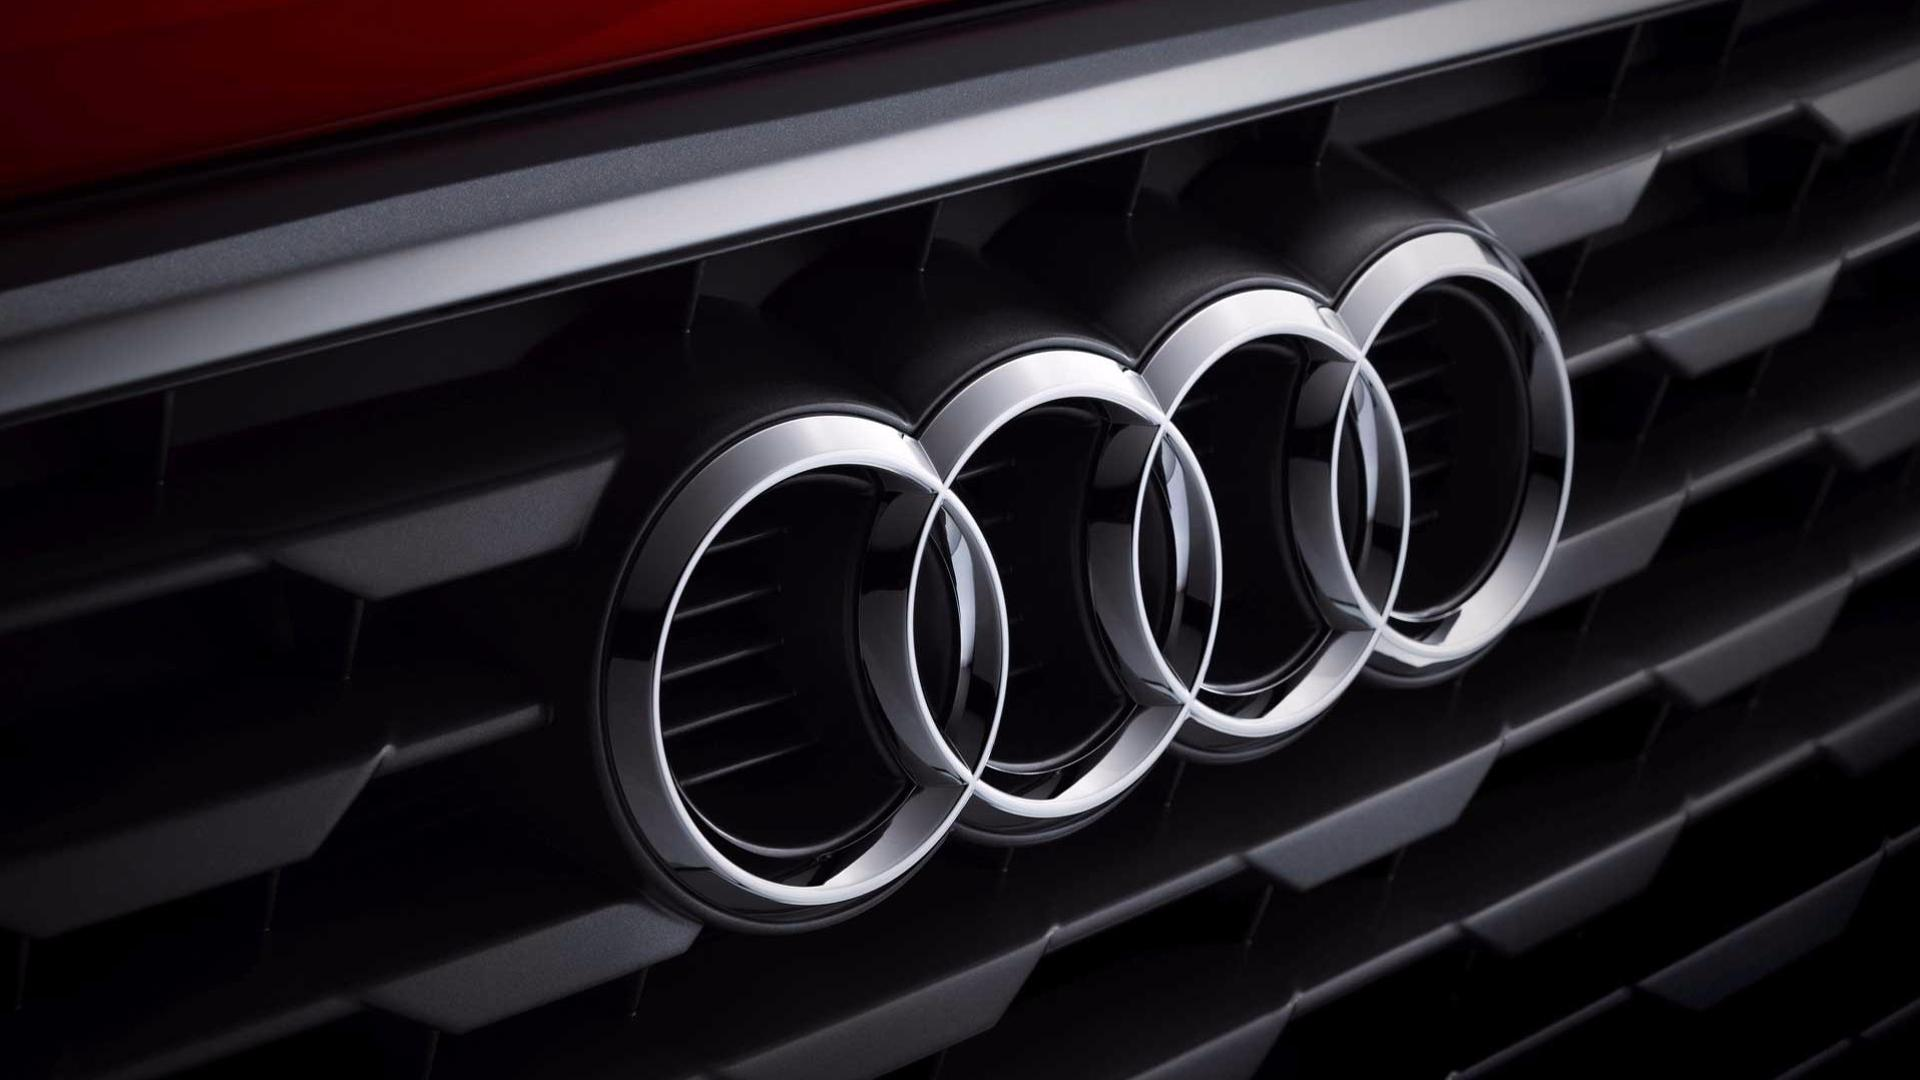 Audi Employees Under Investigation For Falsifying Records - Audi parent company